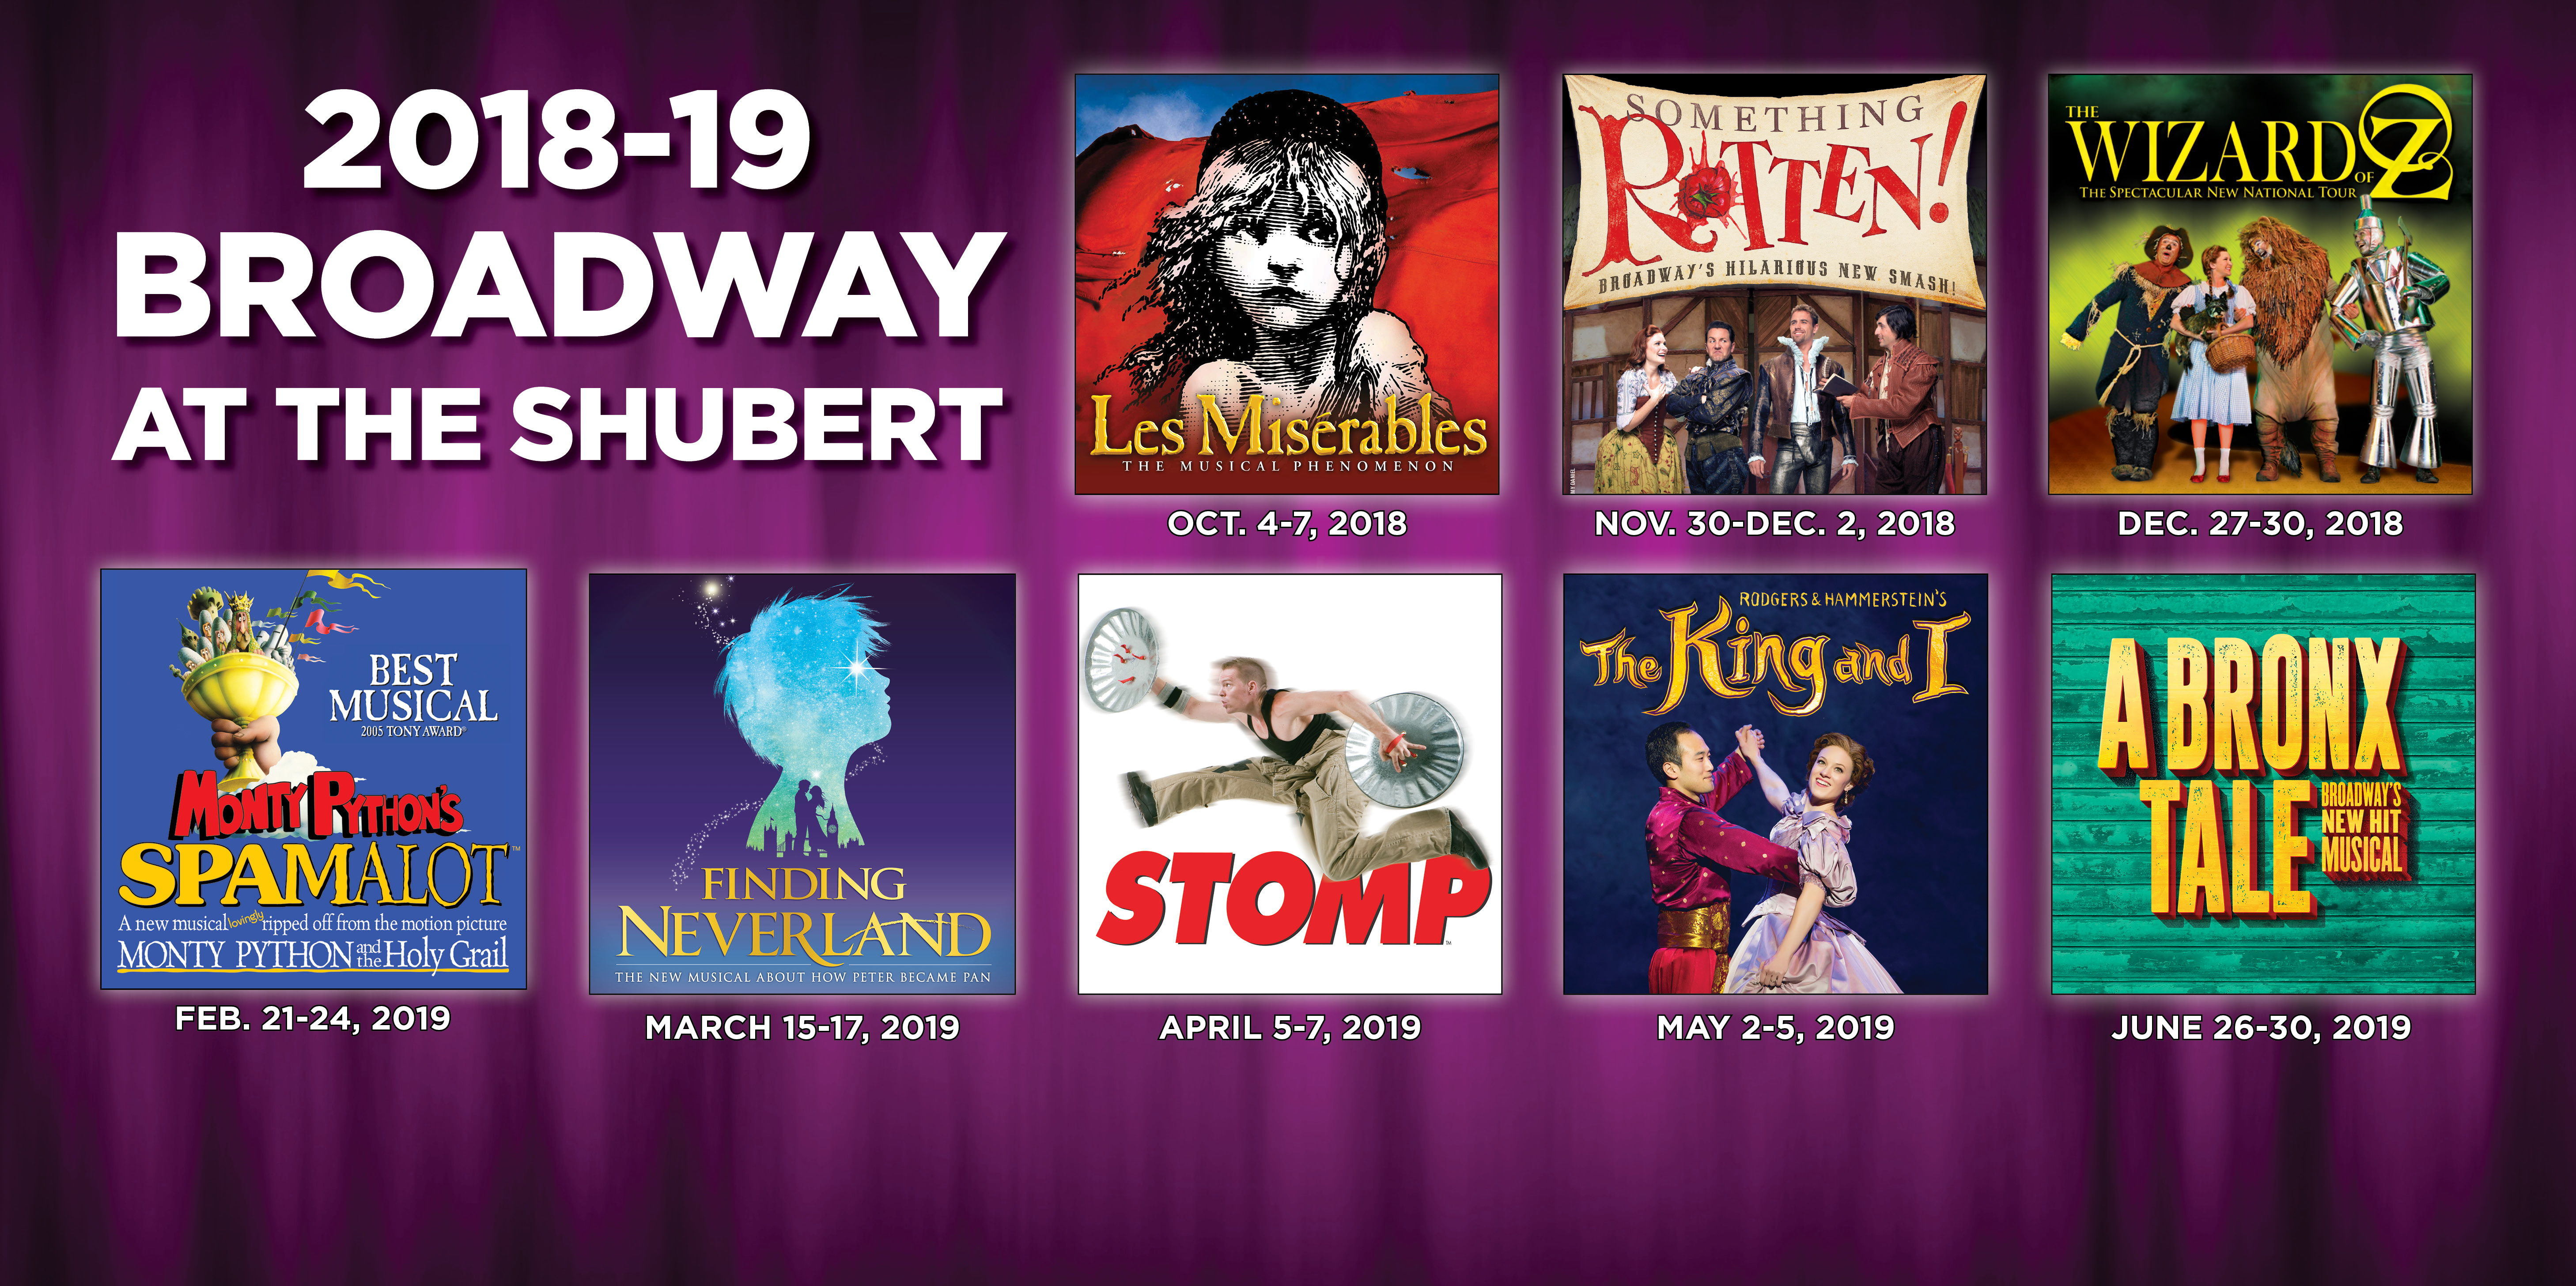 ANNOUNCING THE 2018-2019 BROADWAY SERIES!